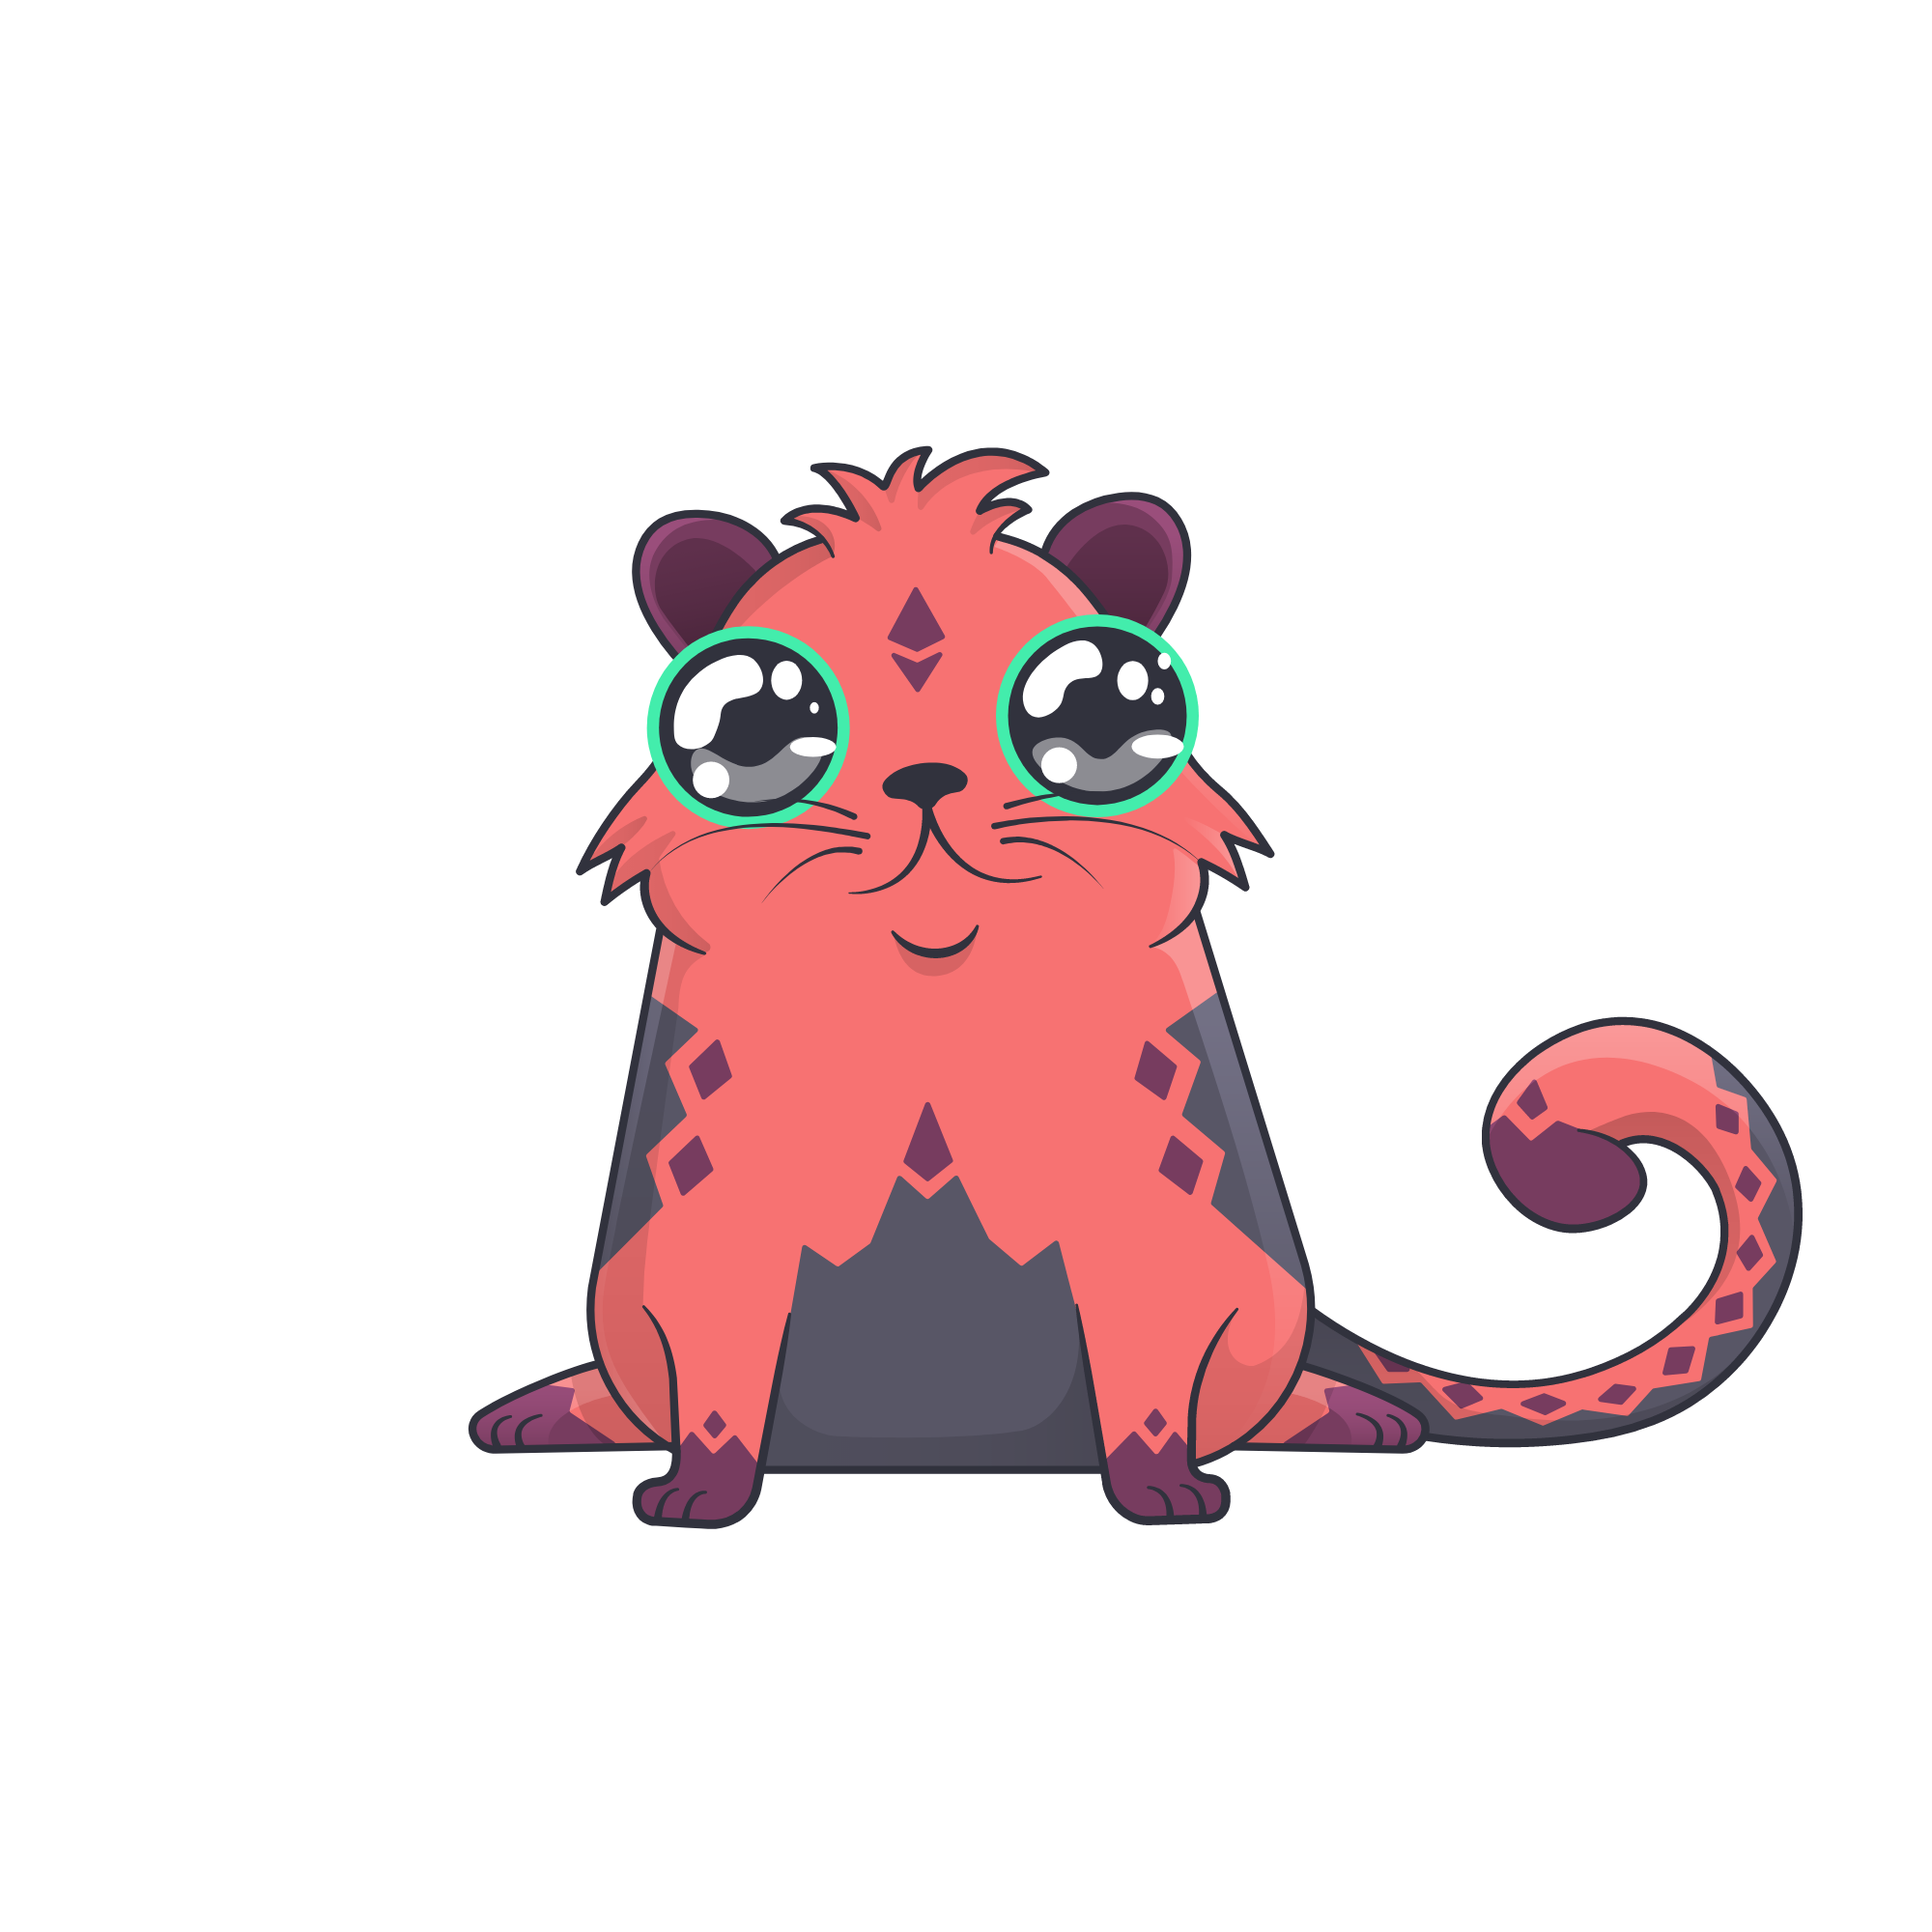 cryptokitty #1632434